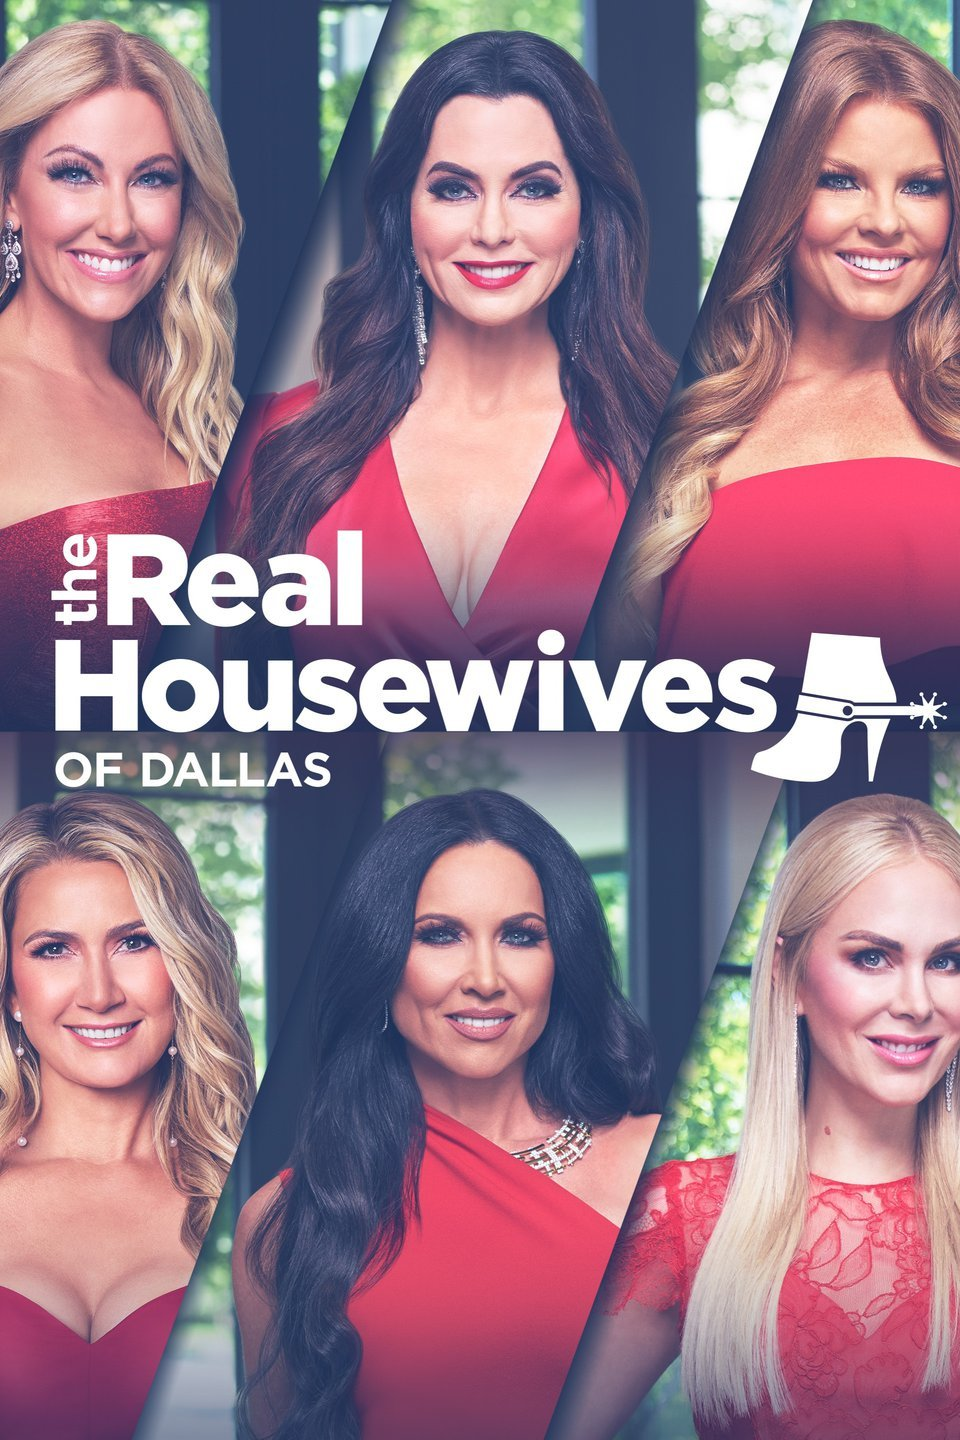 The Real Housewives of Dallas - Season 5 Episode 4 - Whine Connoisseurs